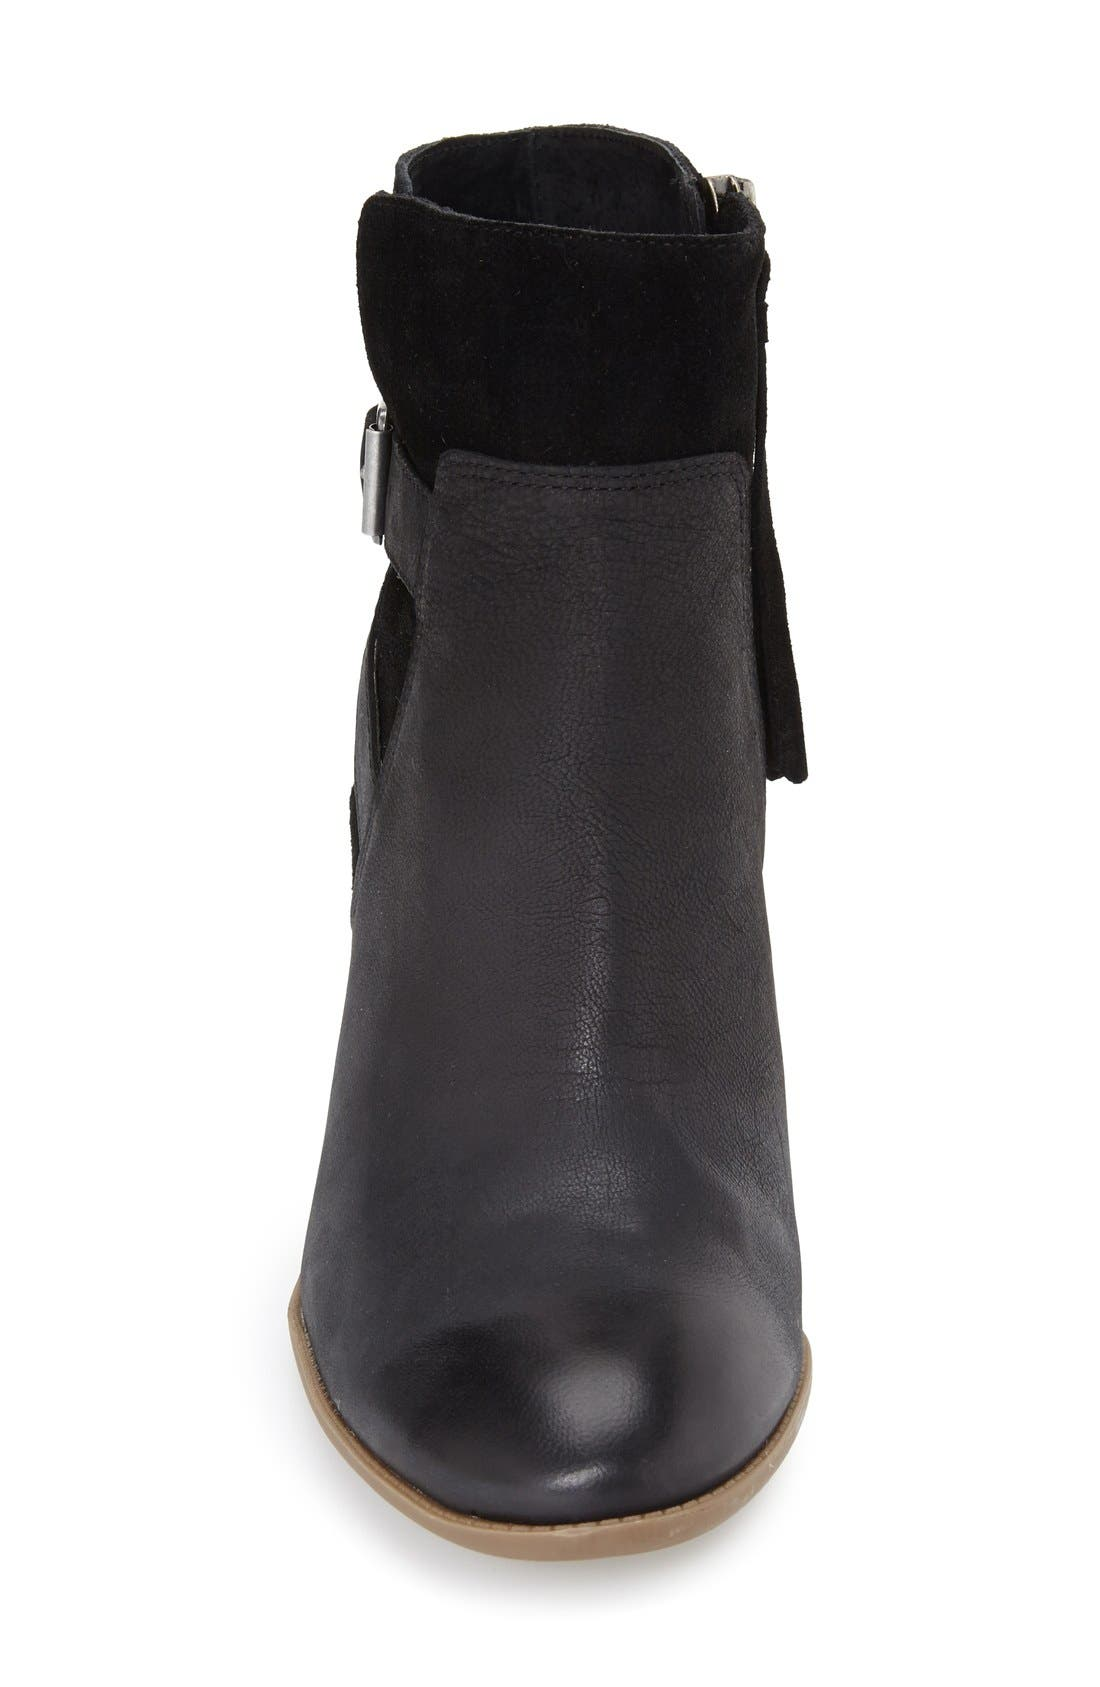 Alternate Image 3  - Sole Society 'Hollie' Bootie (Women)